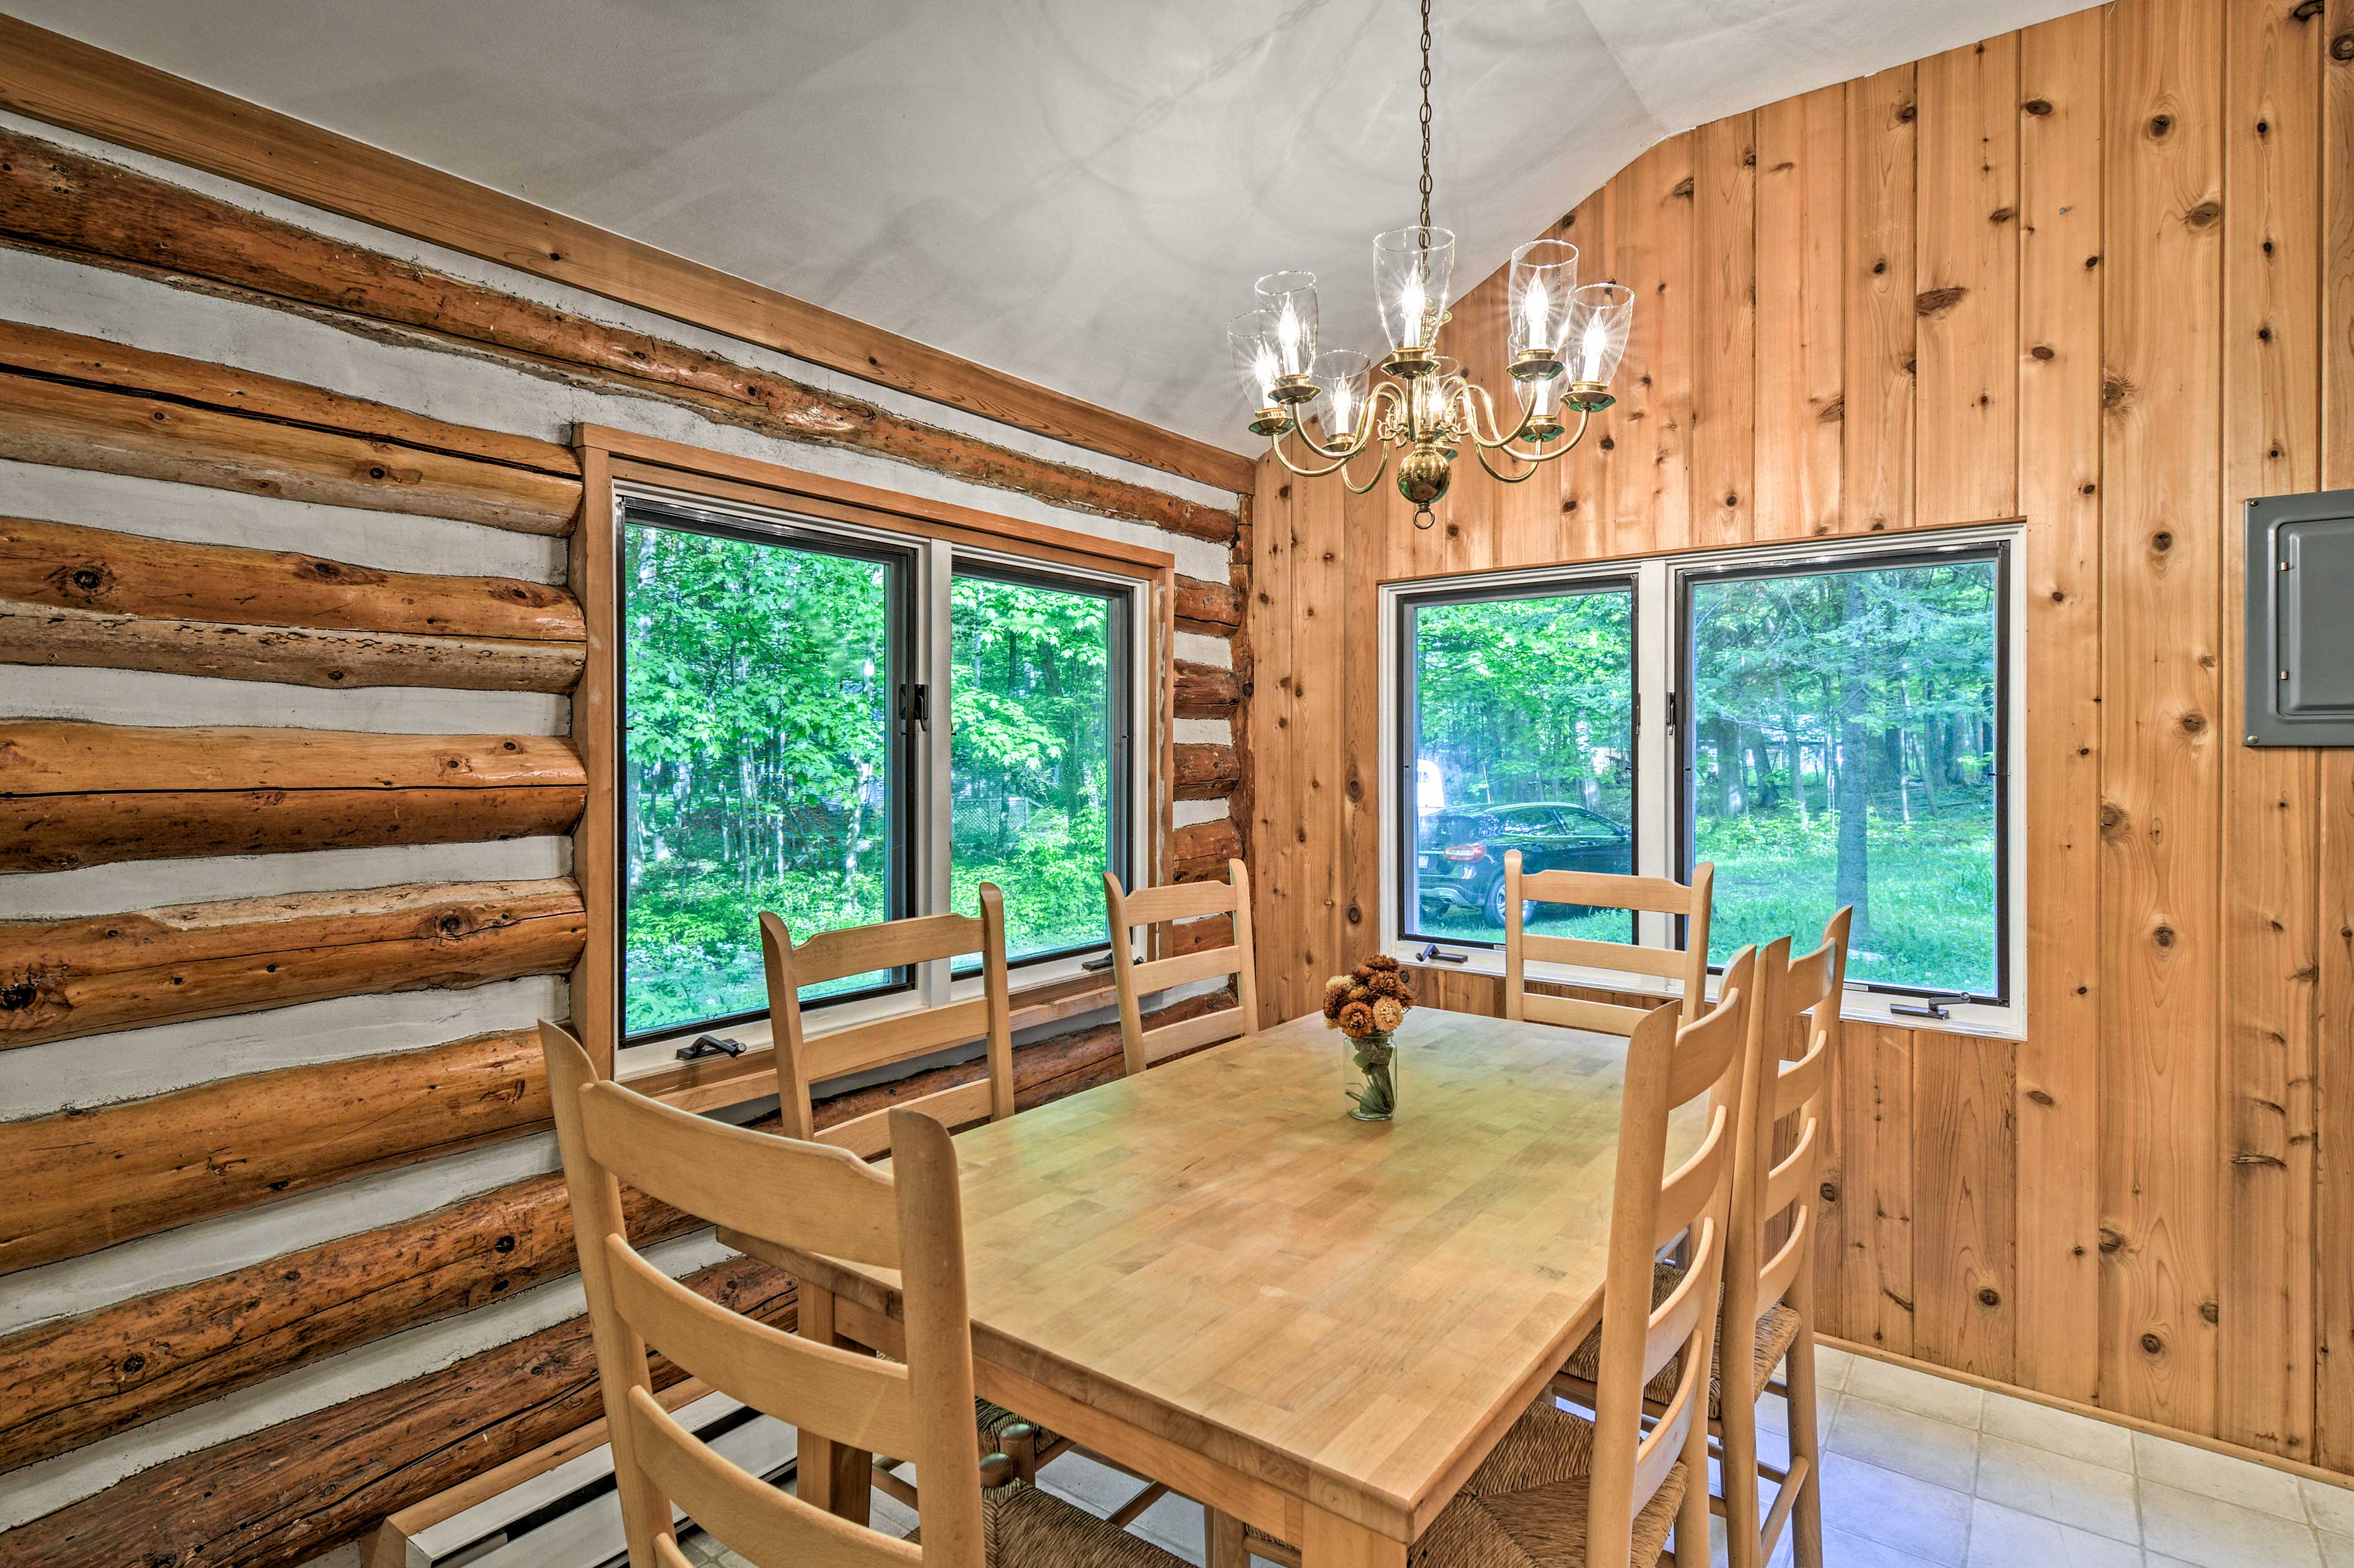 Enjoy meals shared around this wooden dining table.